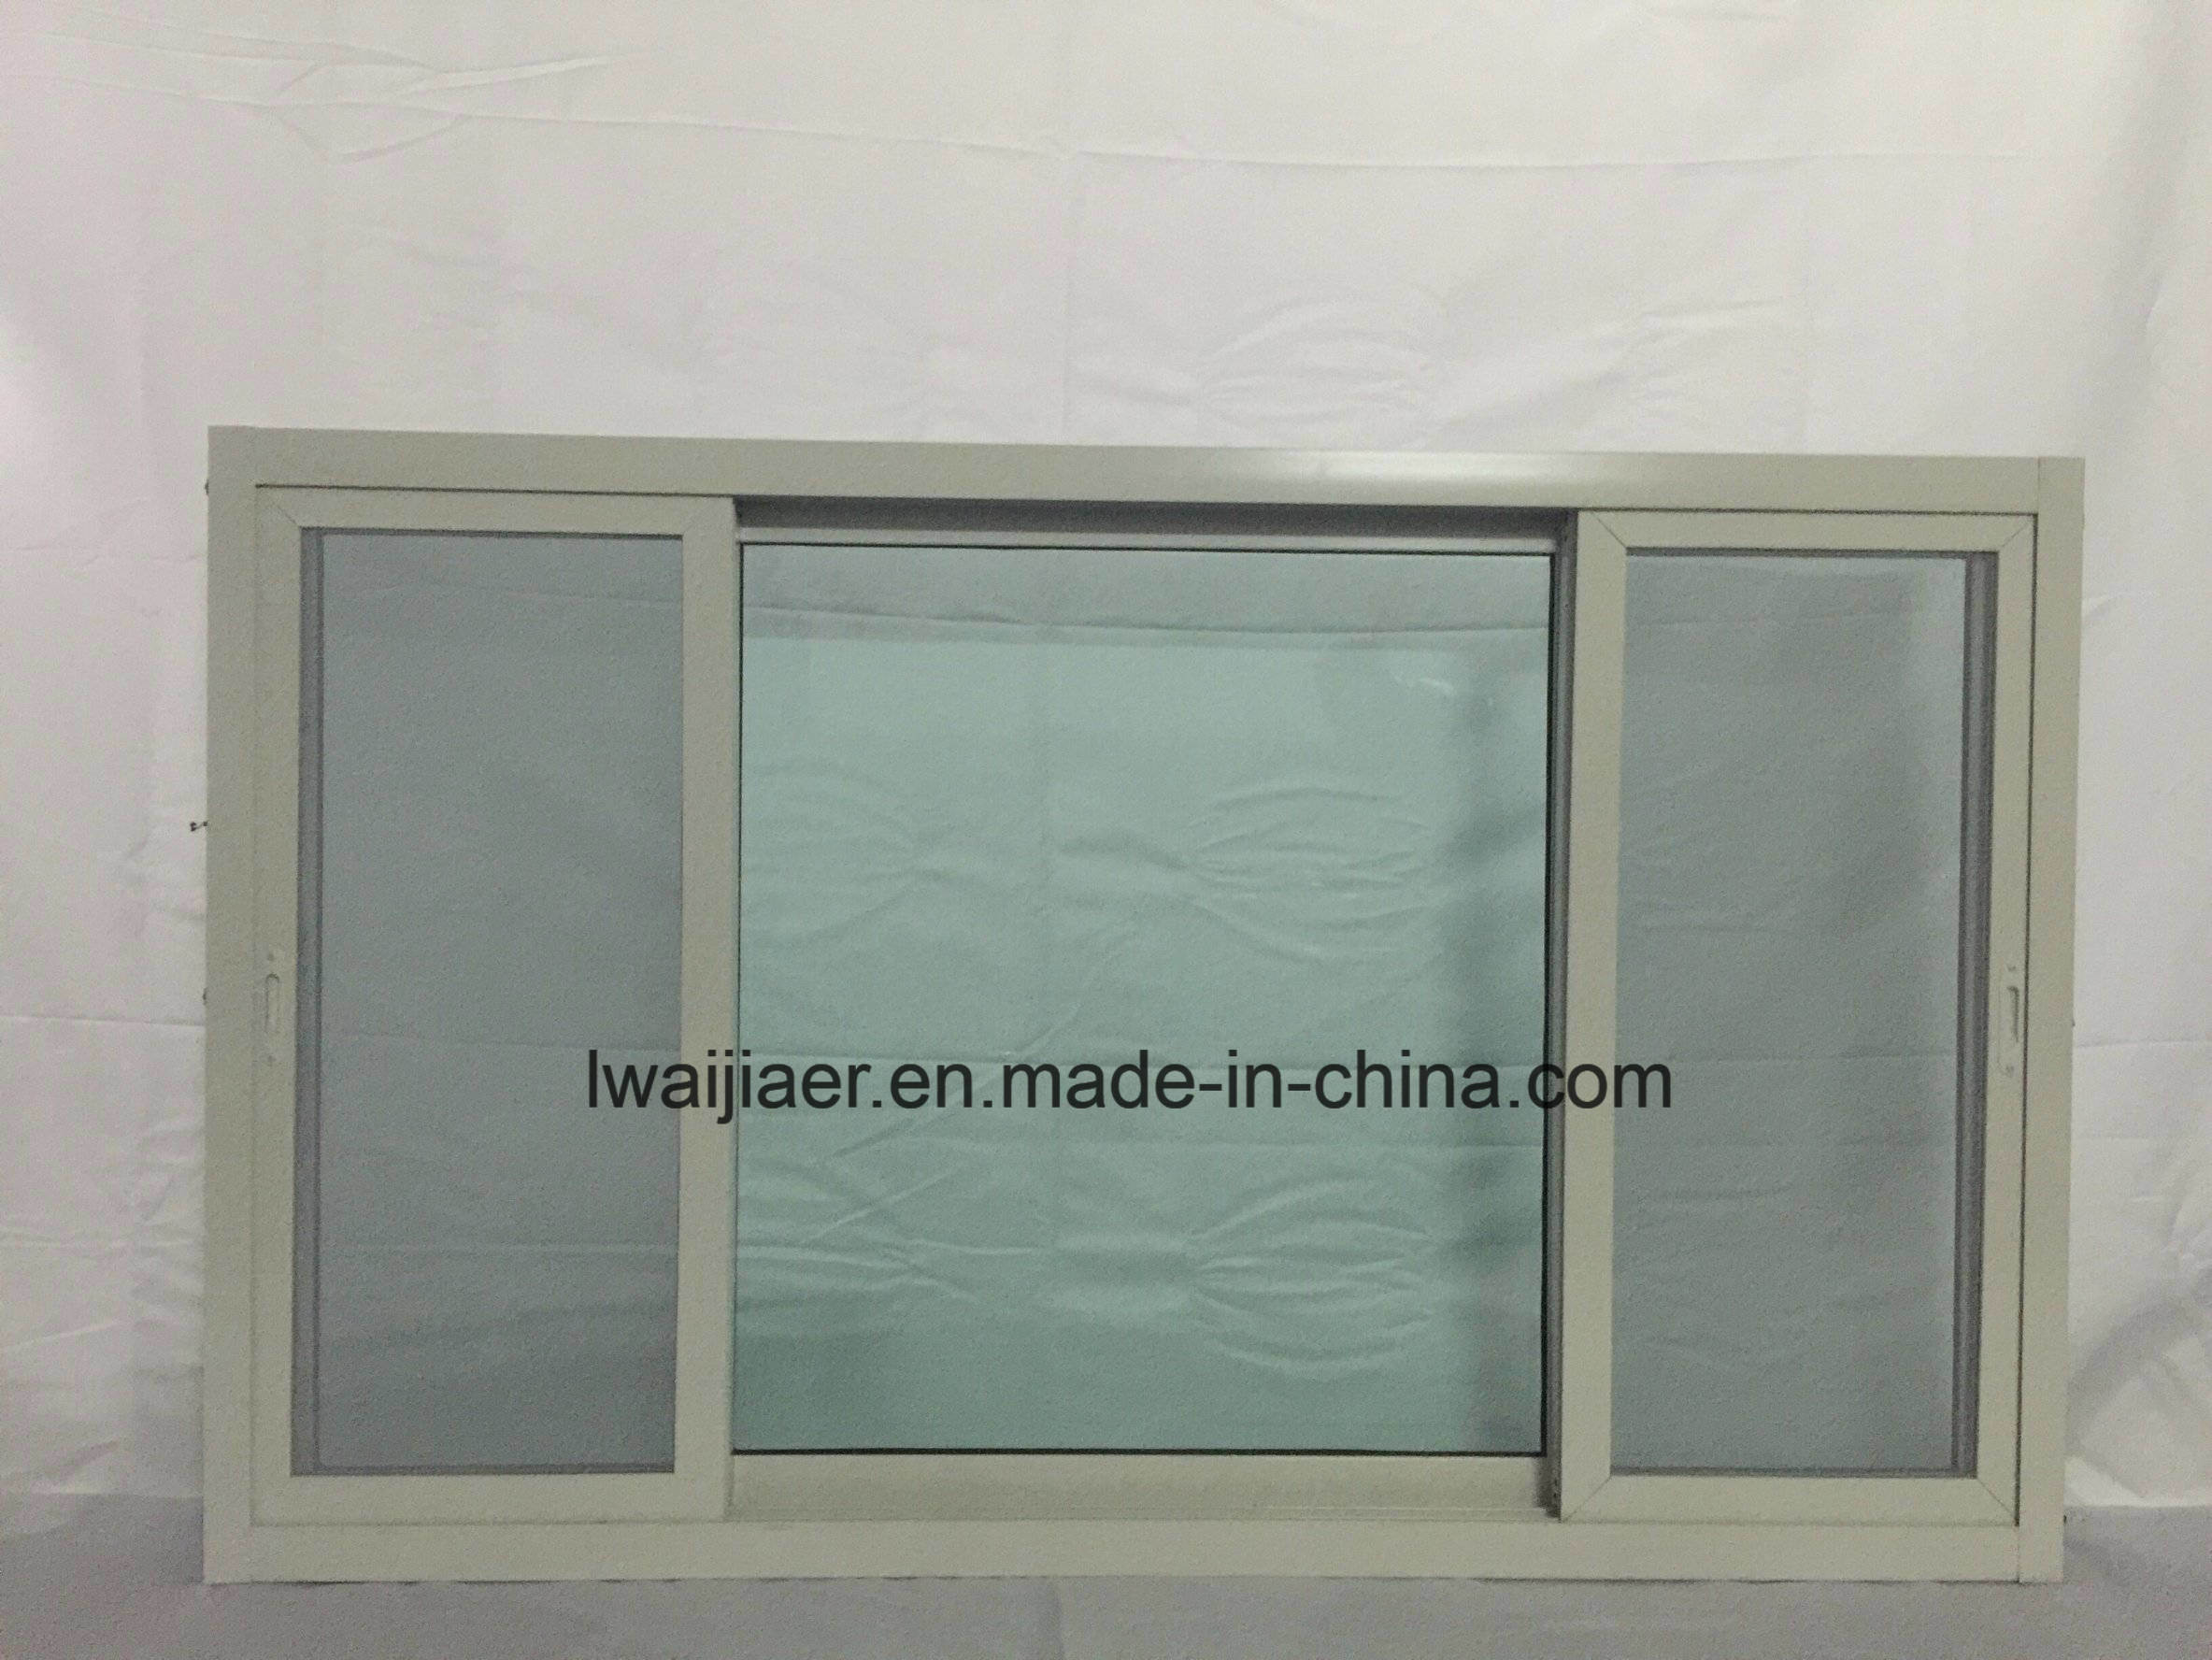 China Aluminumaluminium Sliding Window High Quality Competitive